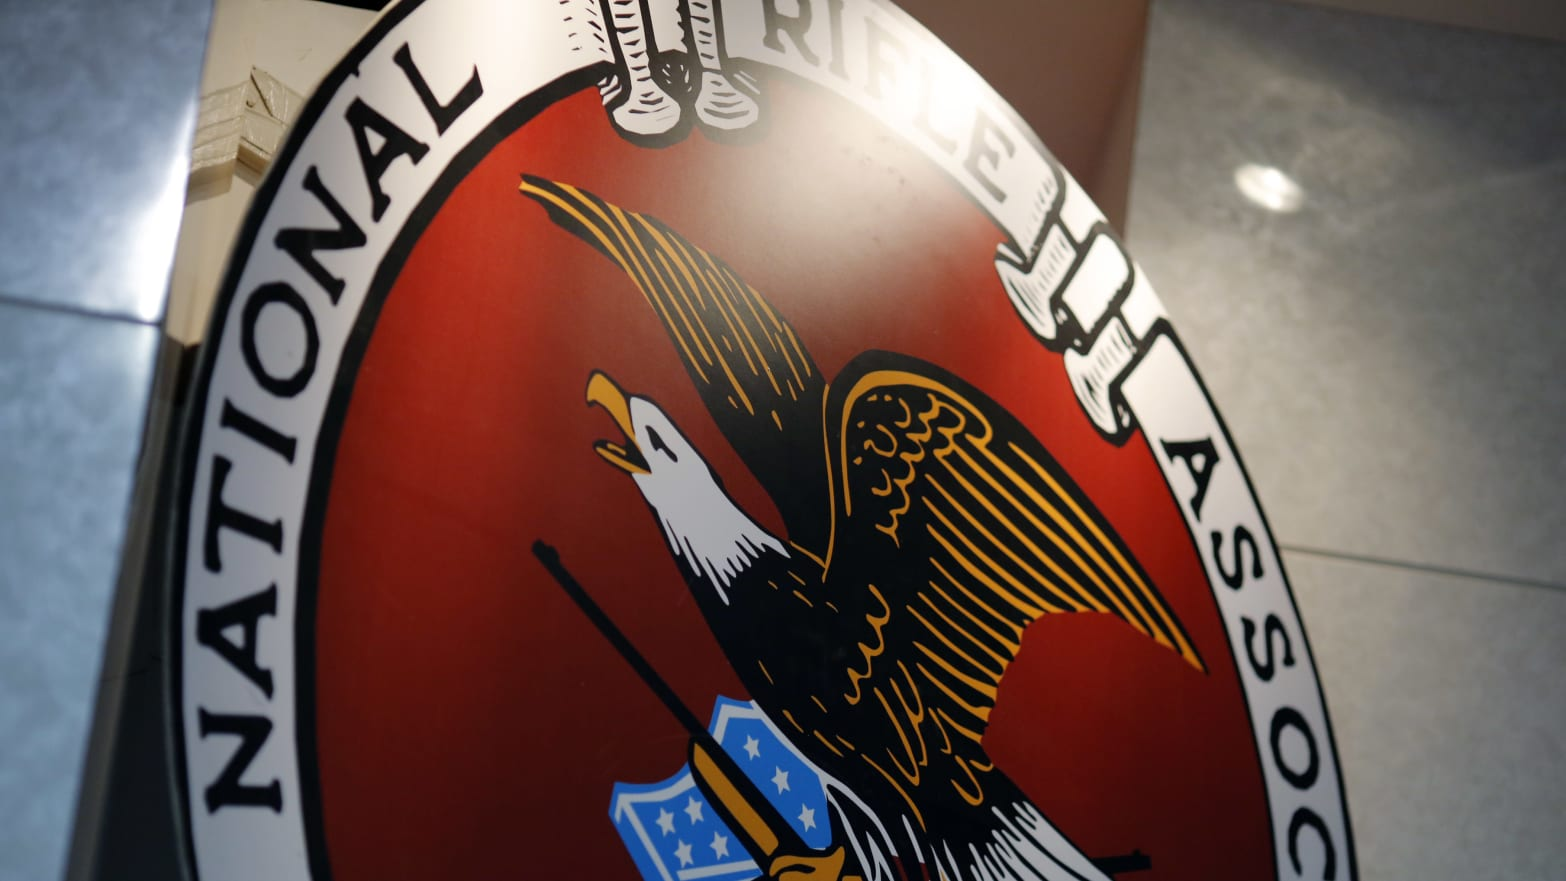 NRA Scores Minor Victories in Messy Legal Battle With Ackerman McQueen